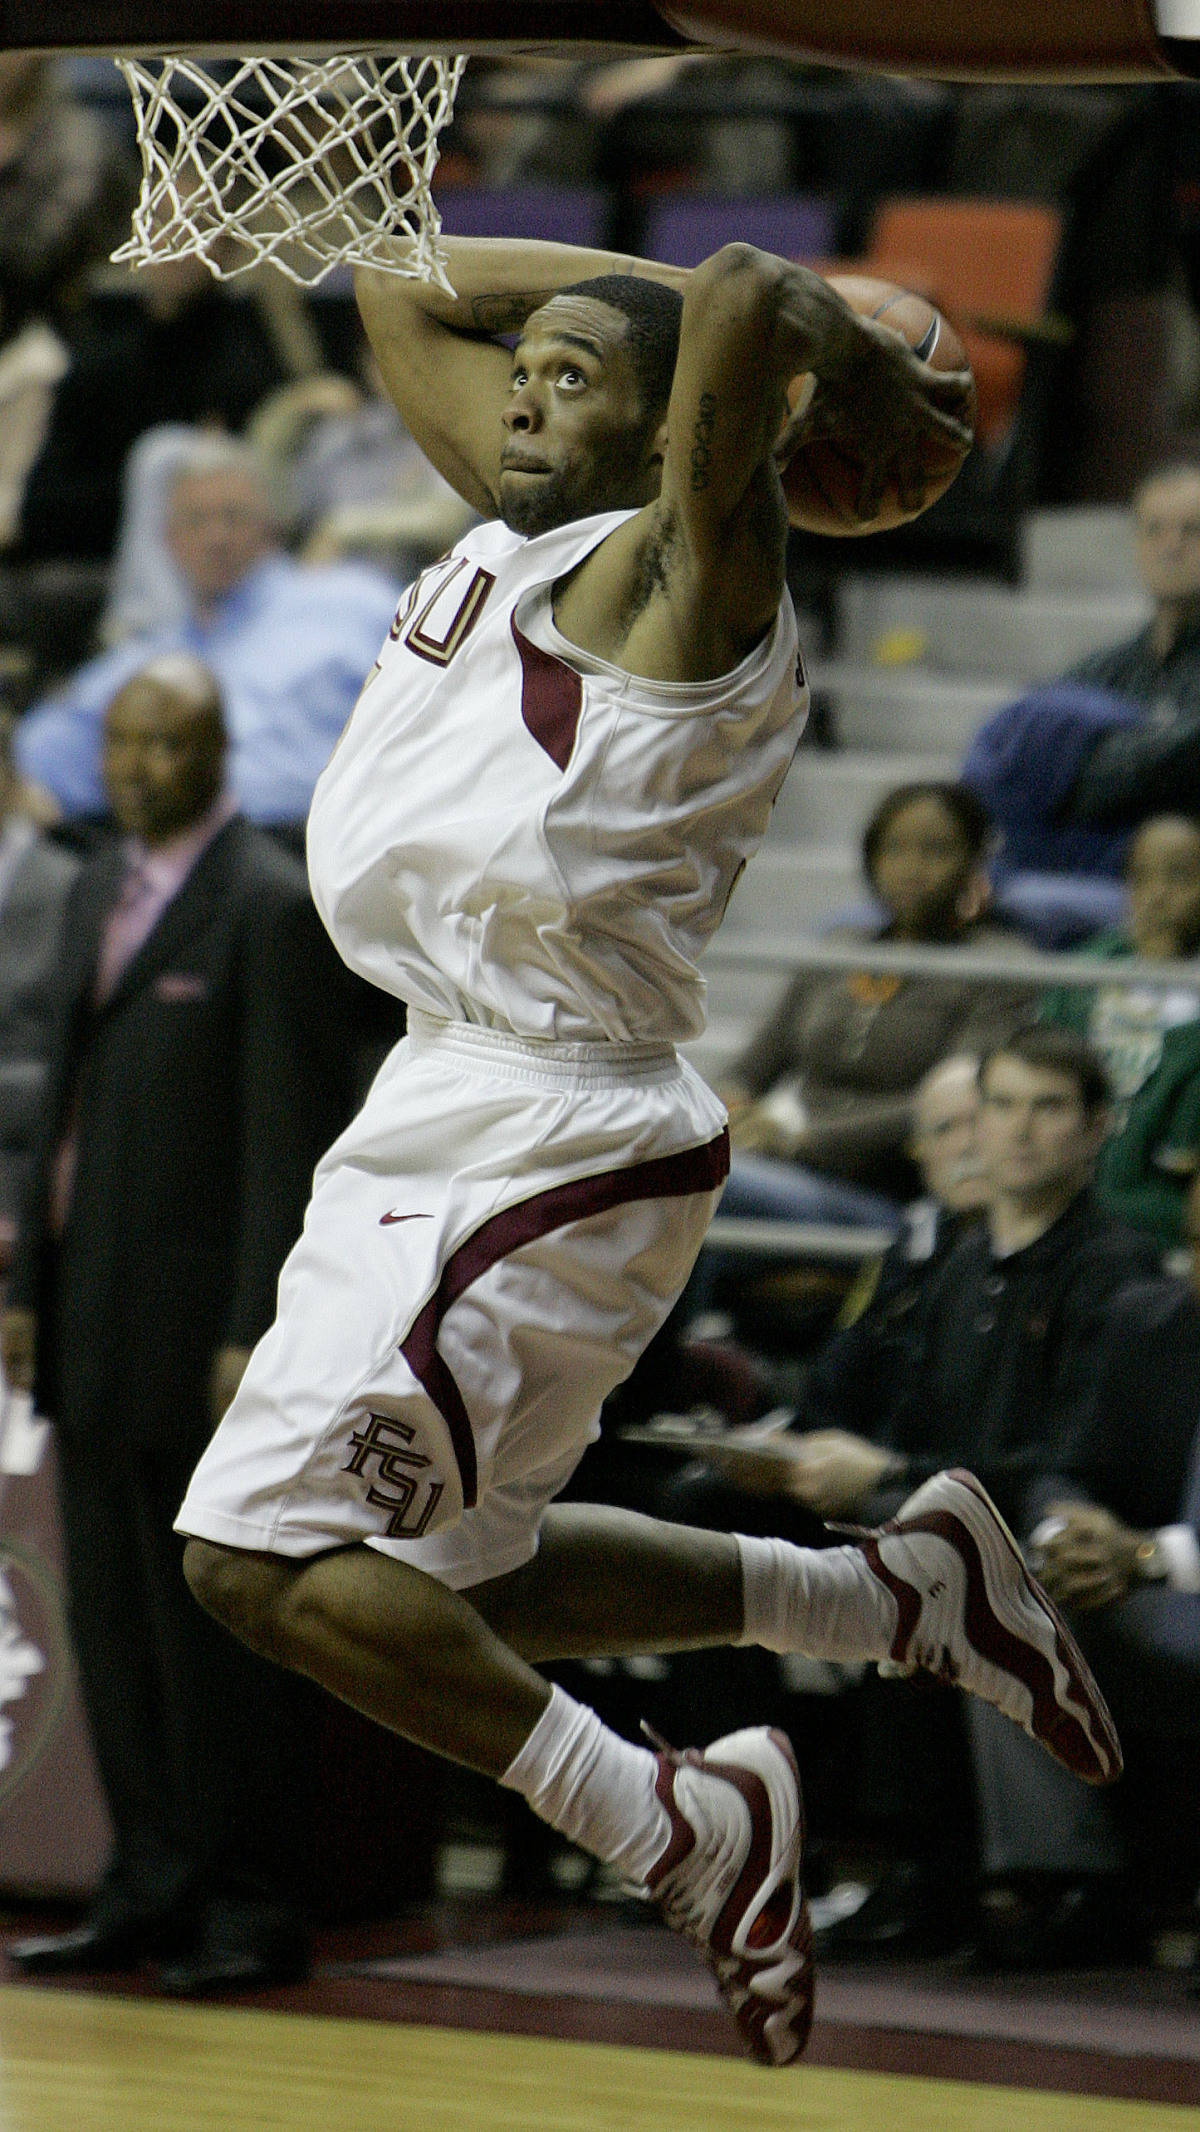 Florida State's Isaiah Swann dunks during the second half of a college basketball game against Virginia Tech, Wednesday, Jan. 17, 2007, in Tallahassee, Fla. Florida State won 82-73.(AP Photo/Phil Coale)